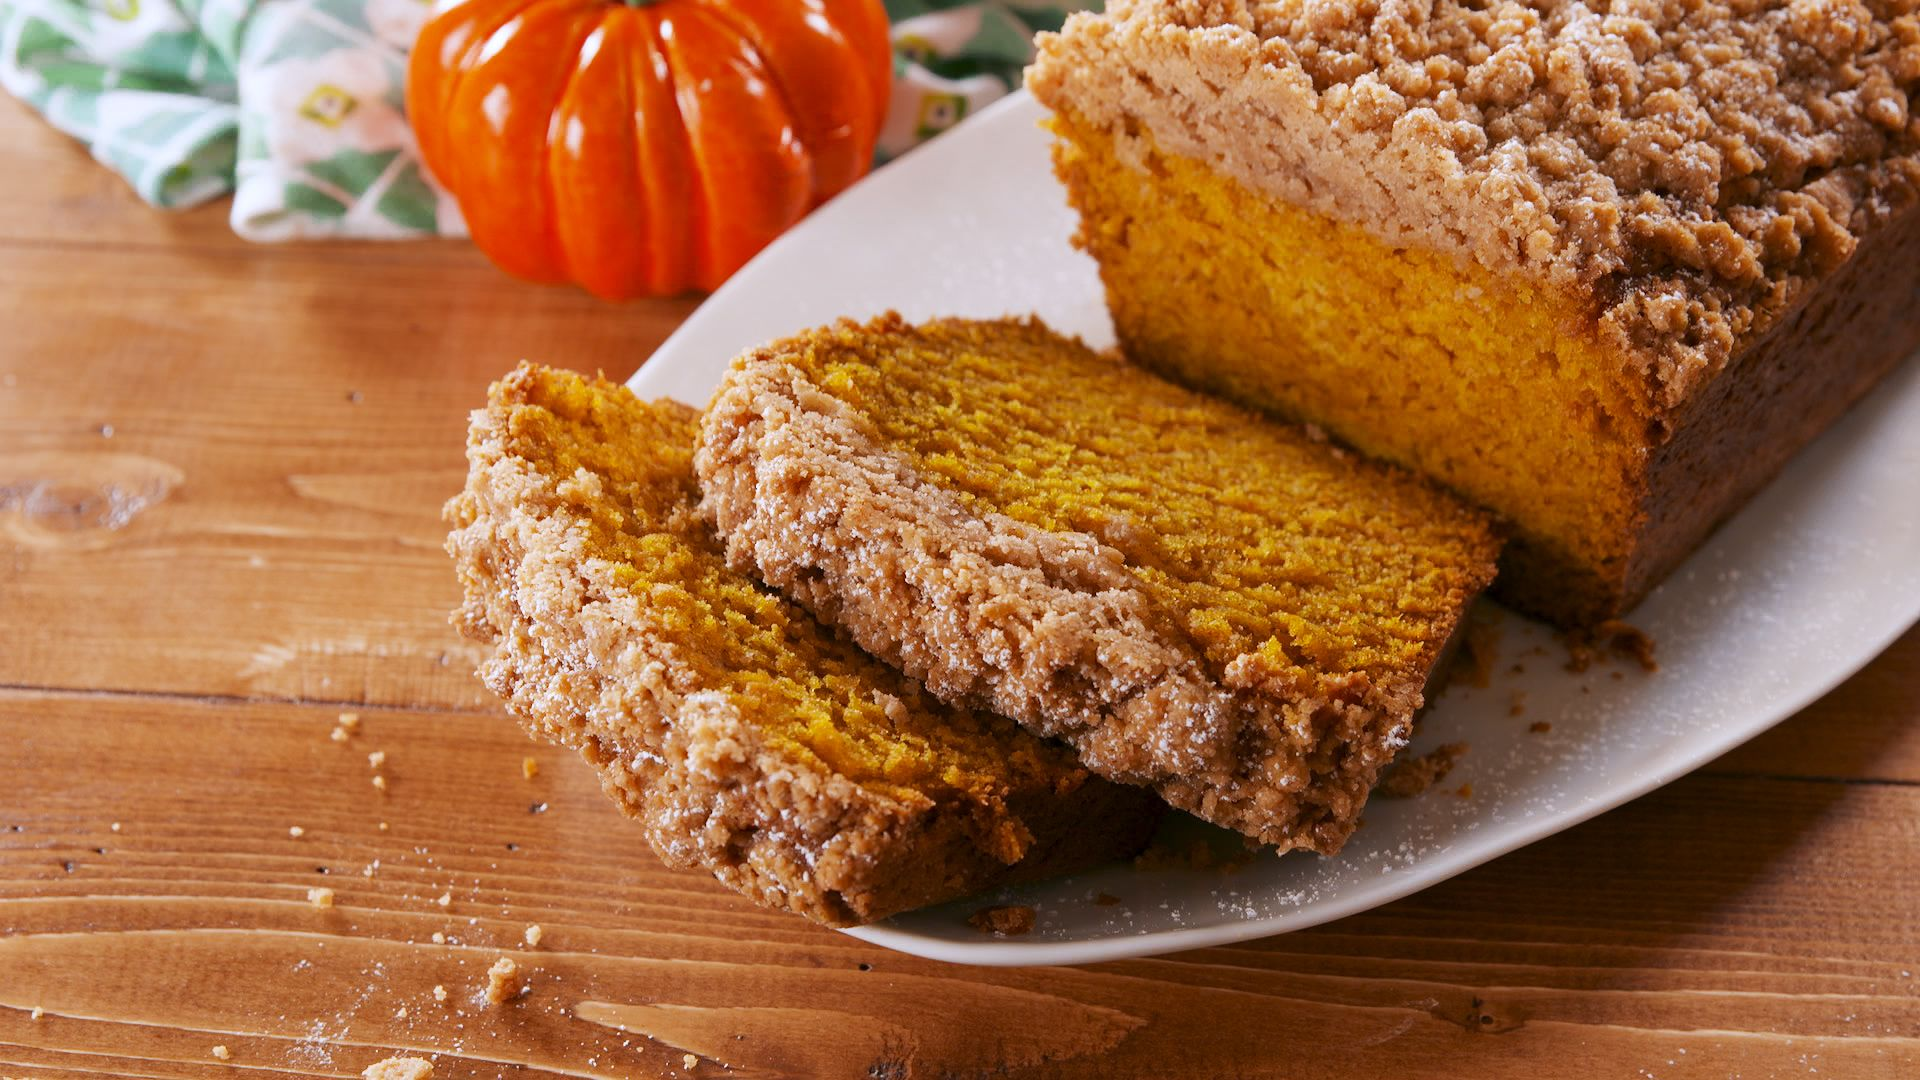 Best Crumbly Pumpkin Bread Recipe How To Make Crumbly Pumpkin Bread